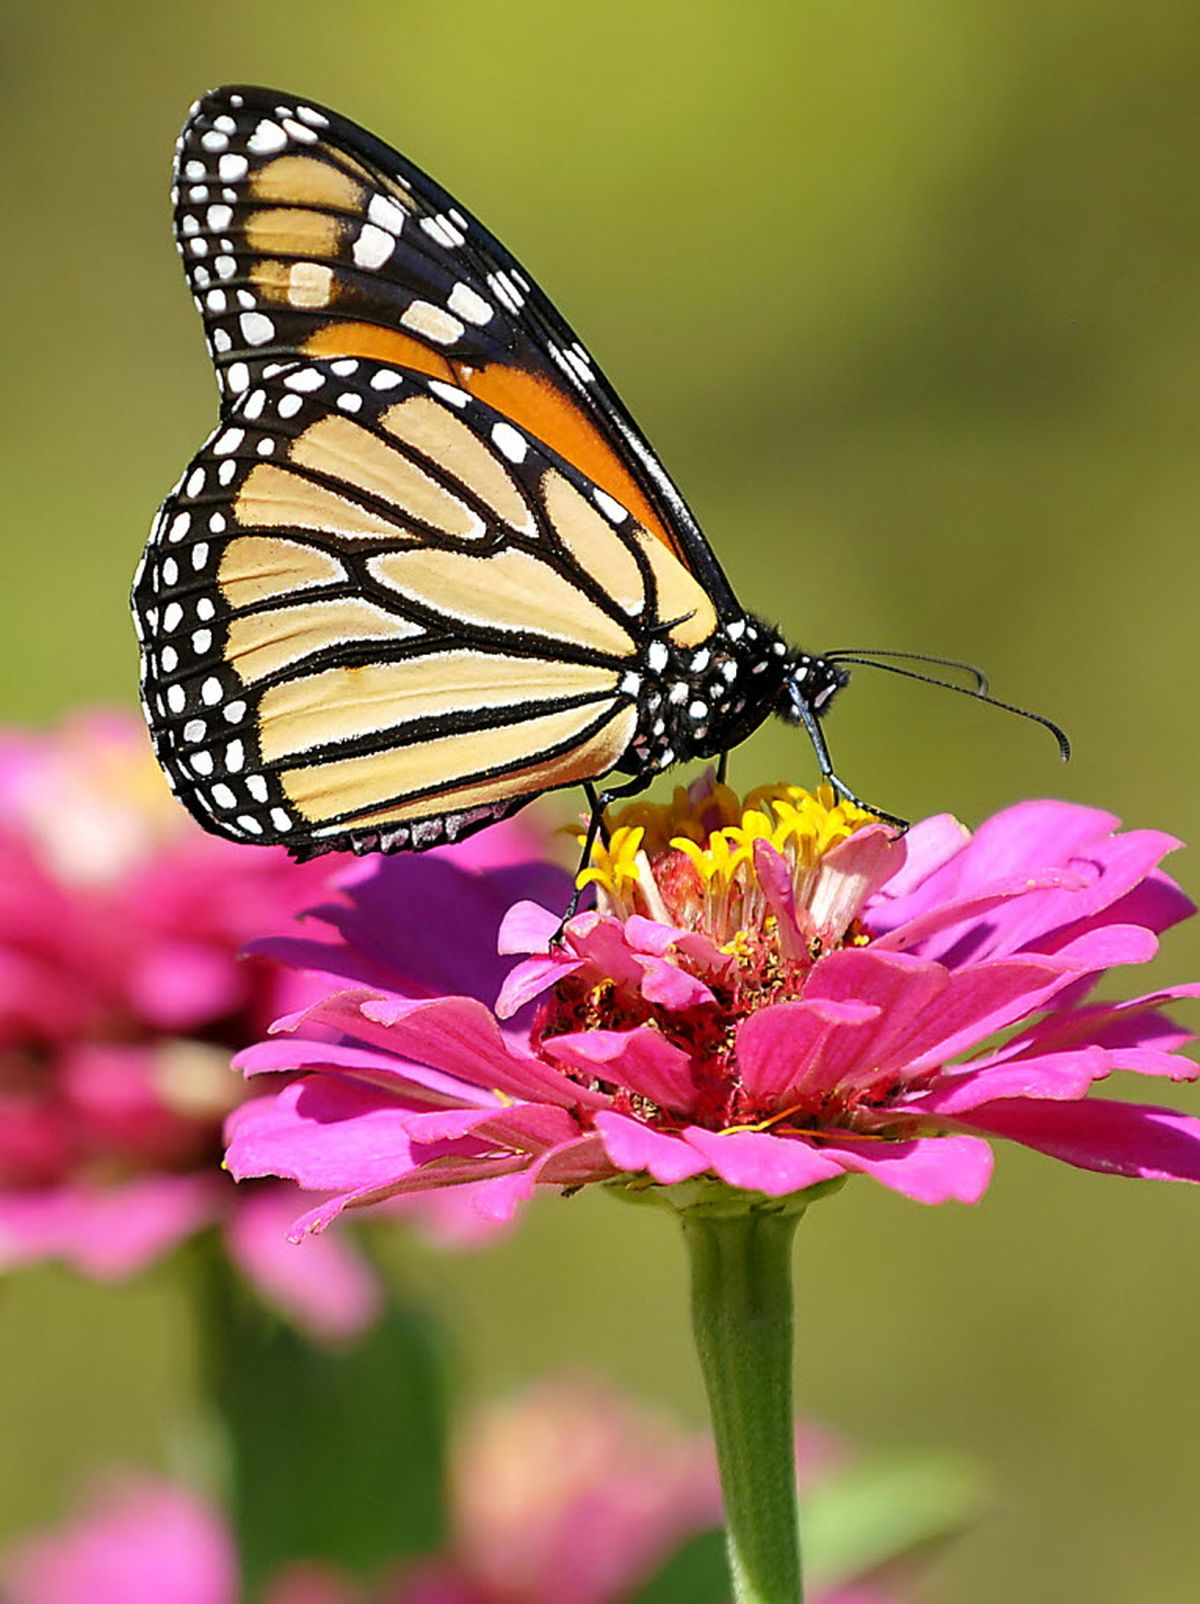 Endangered status for monarch butterfly petitioned | The